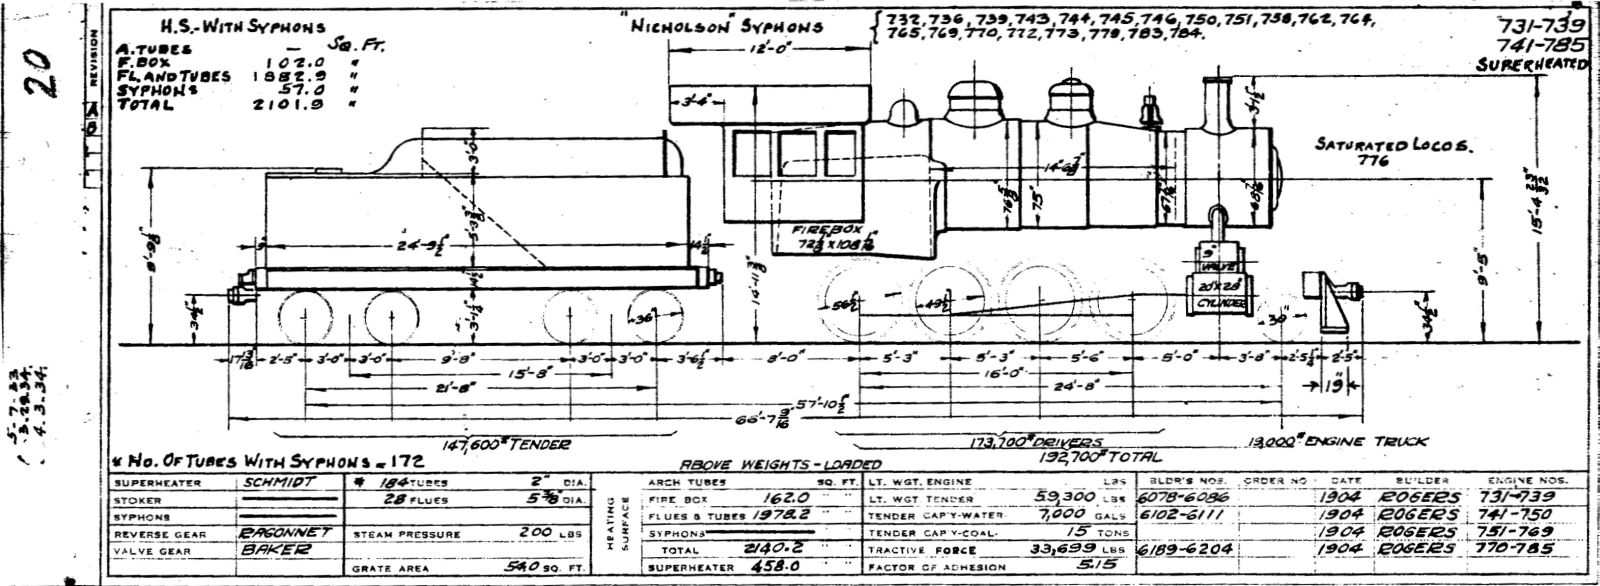 illinois central 1937 locomotive diagrams